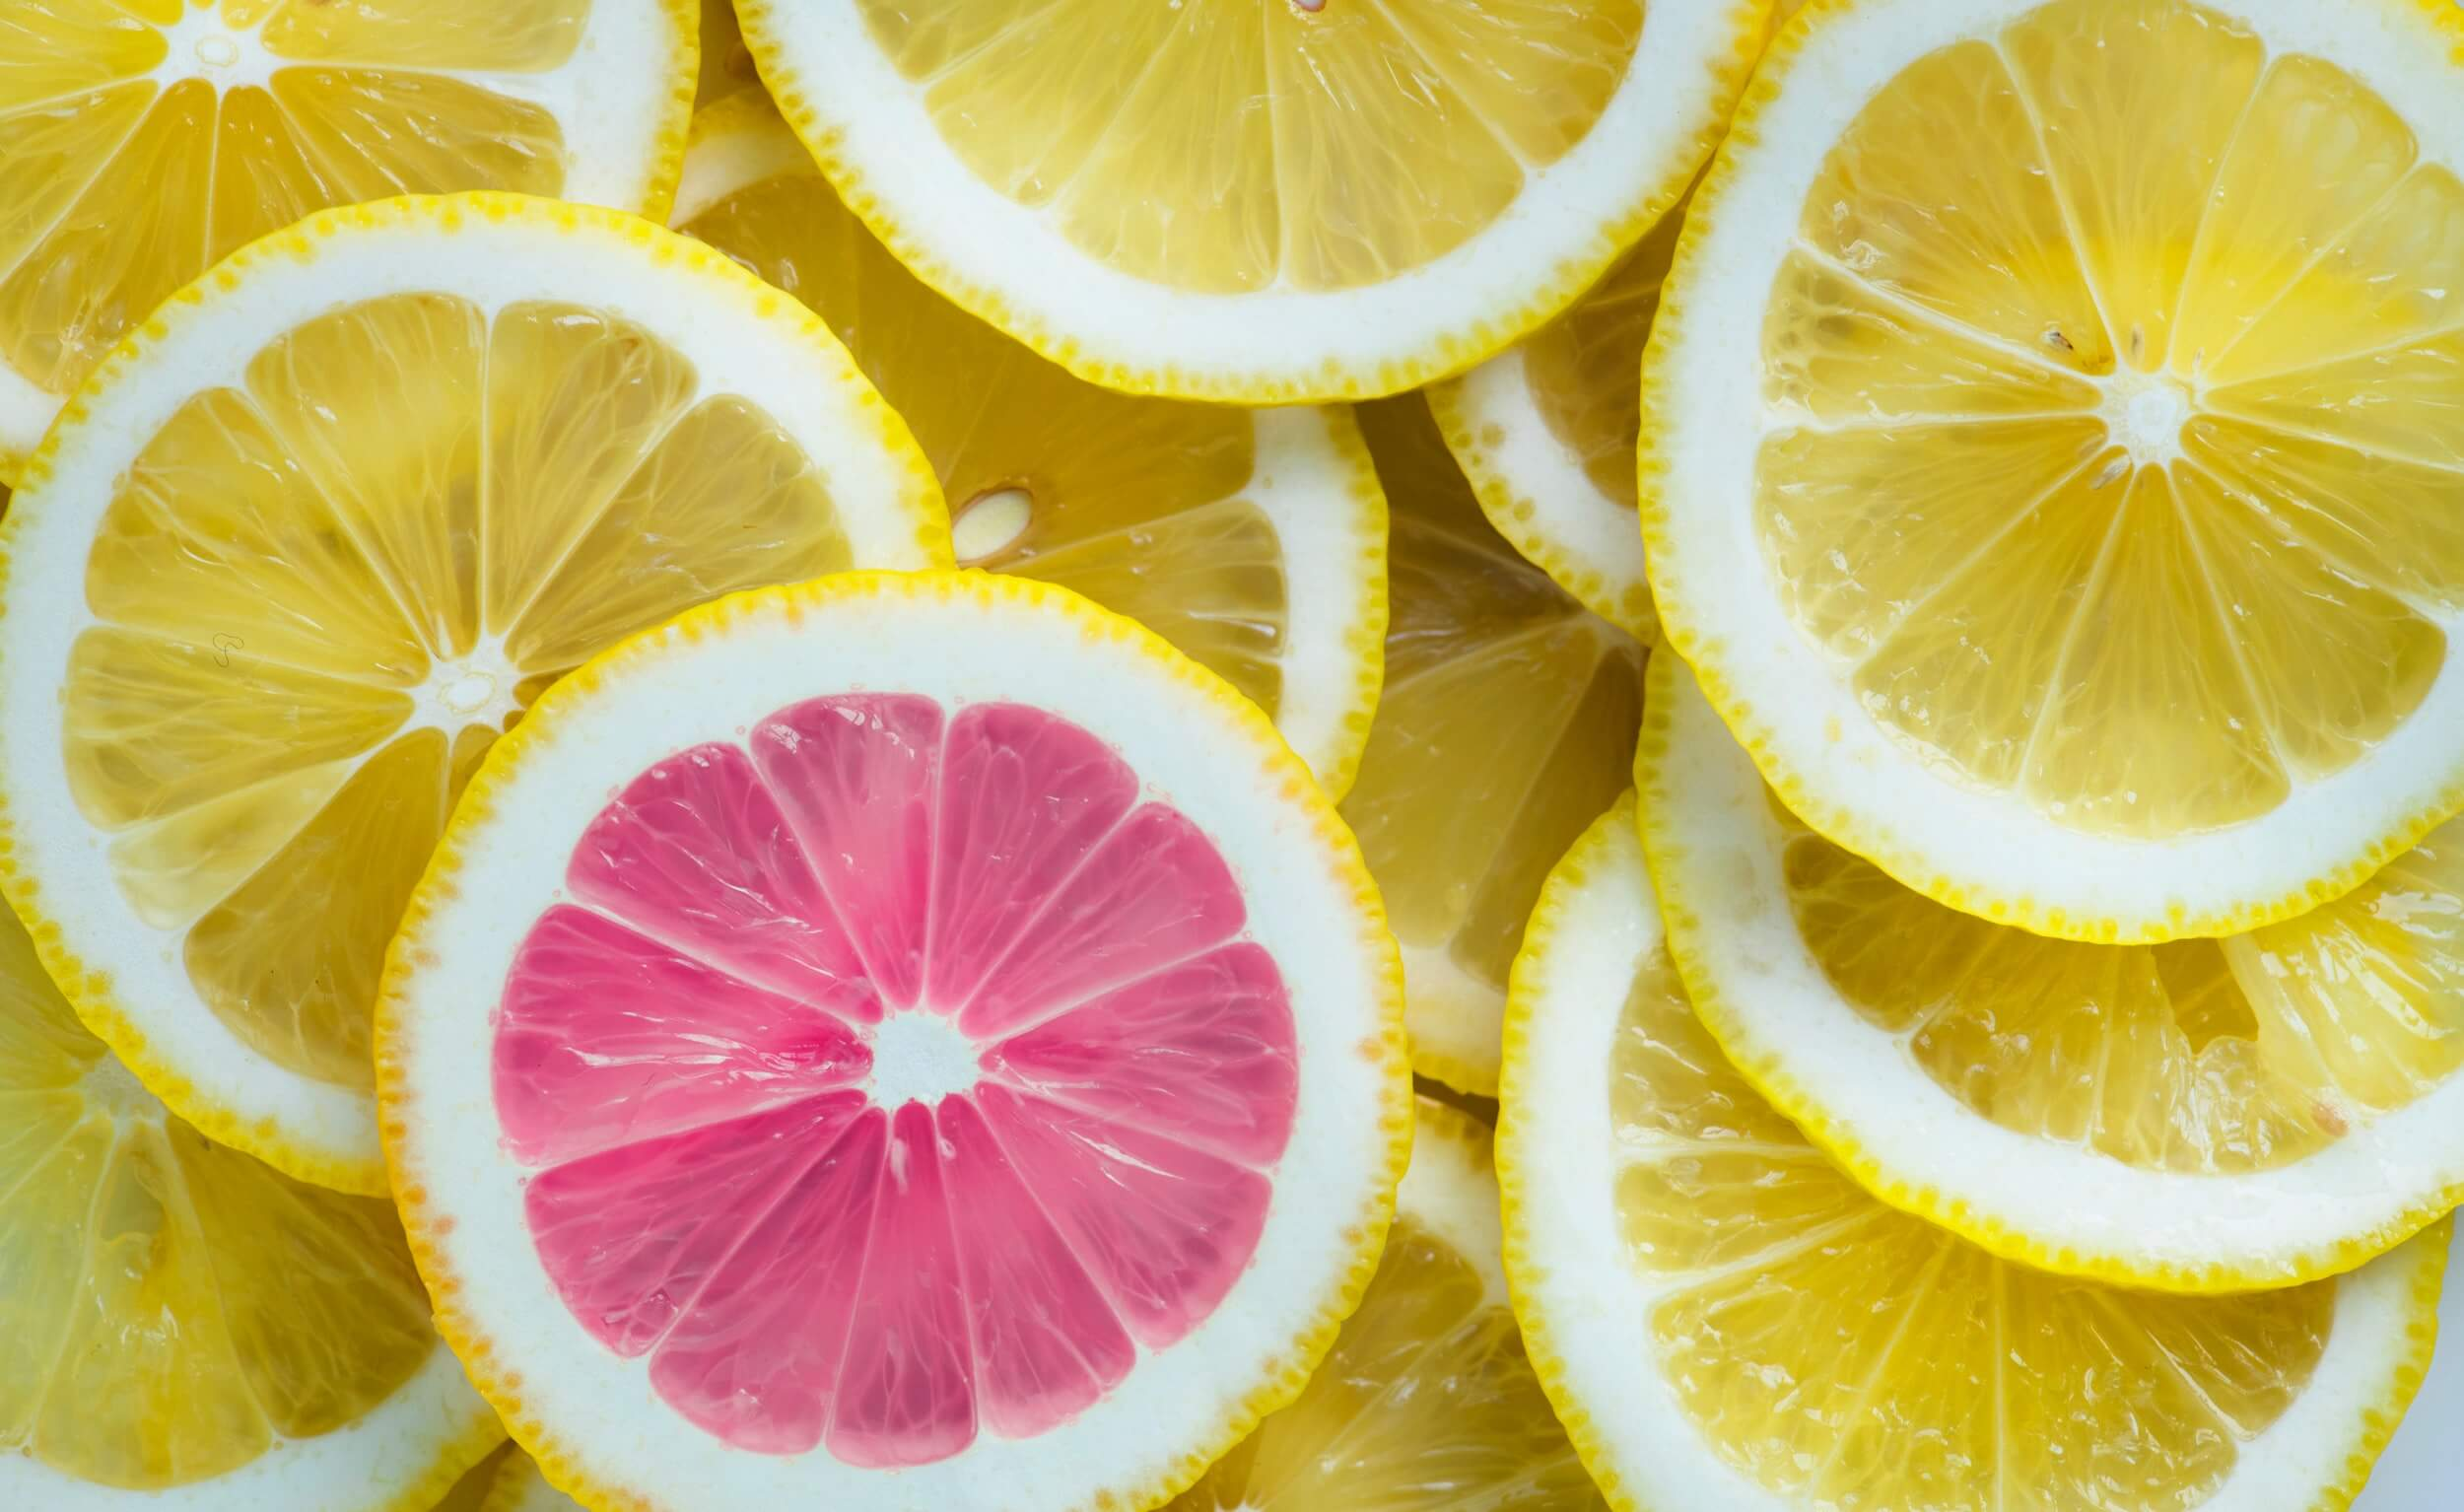 Yellow and pink lemon slices